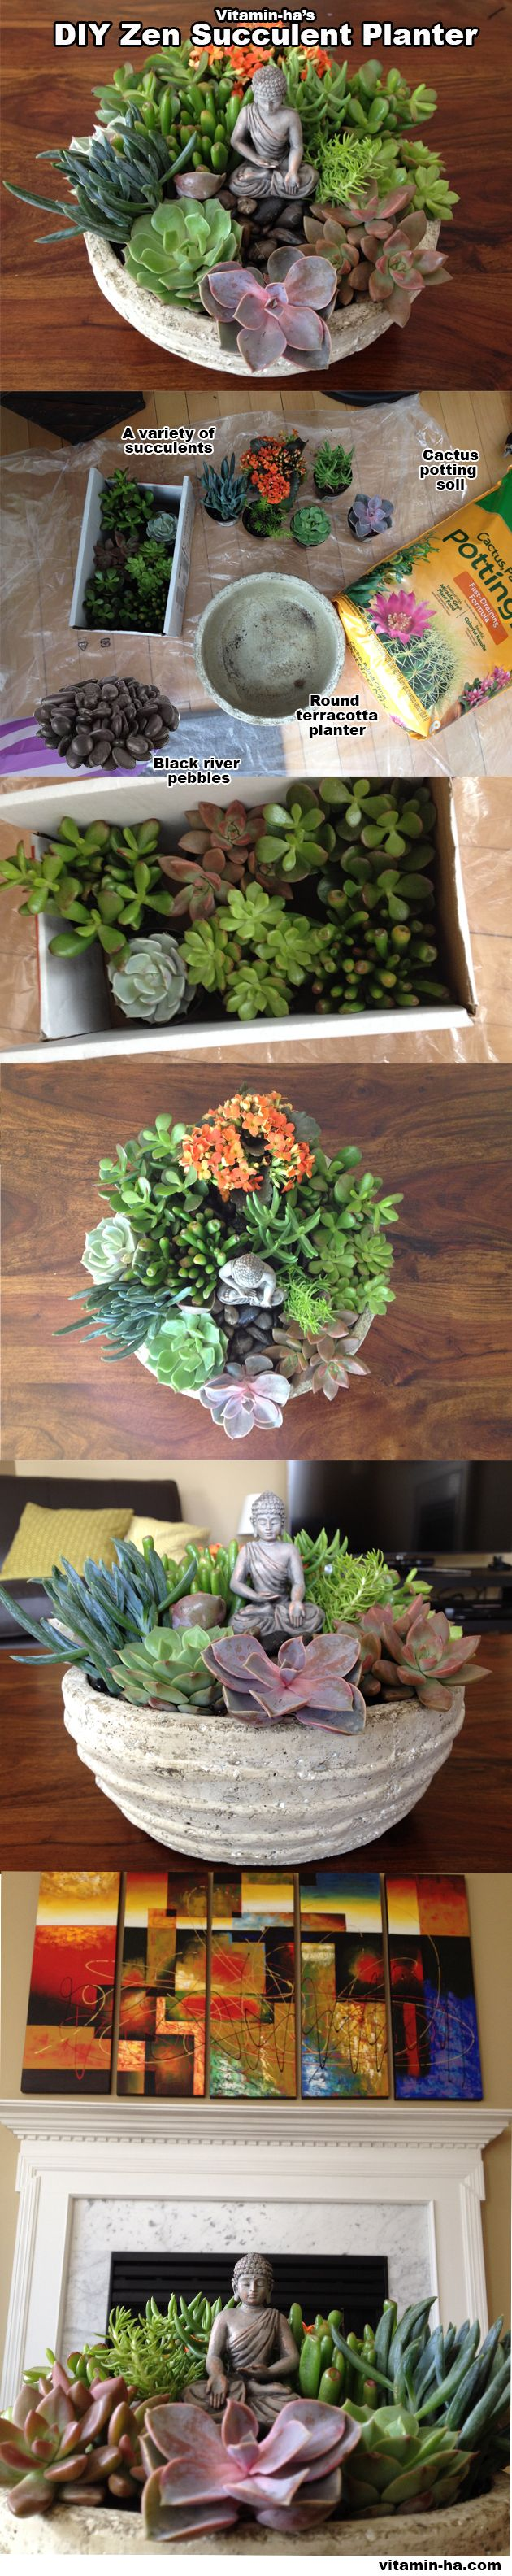 Vitamin-Ha – Create your own Tabletop Zen Succulent Garden